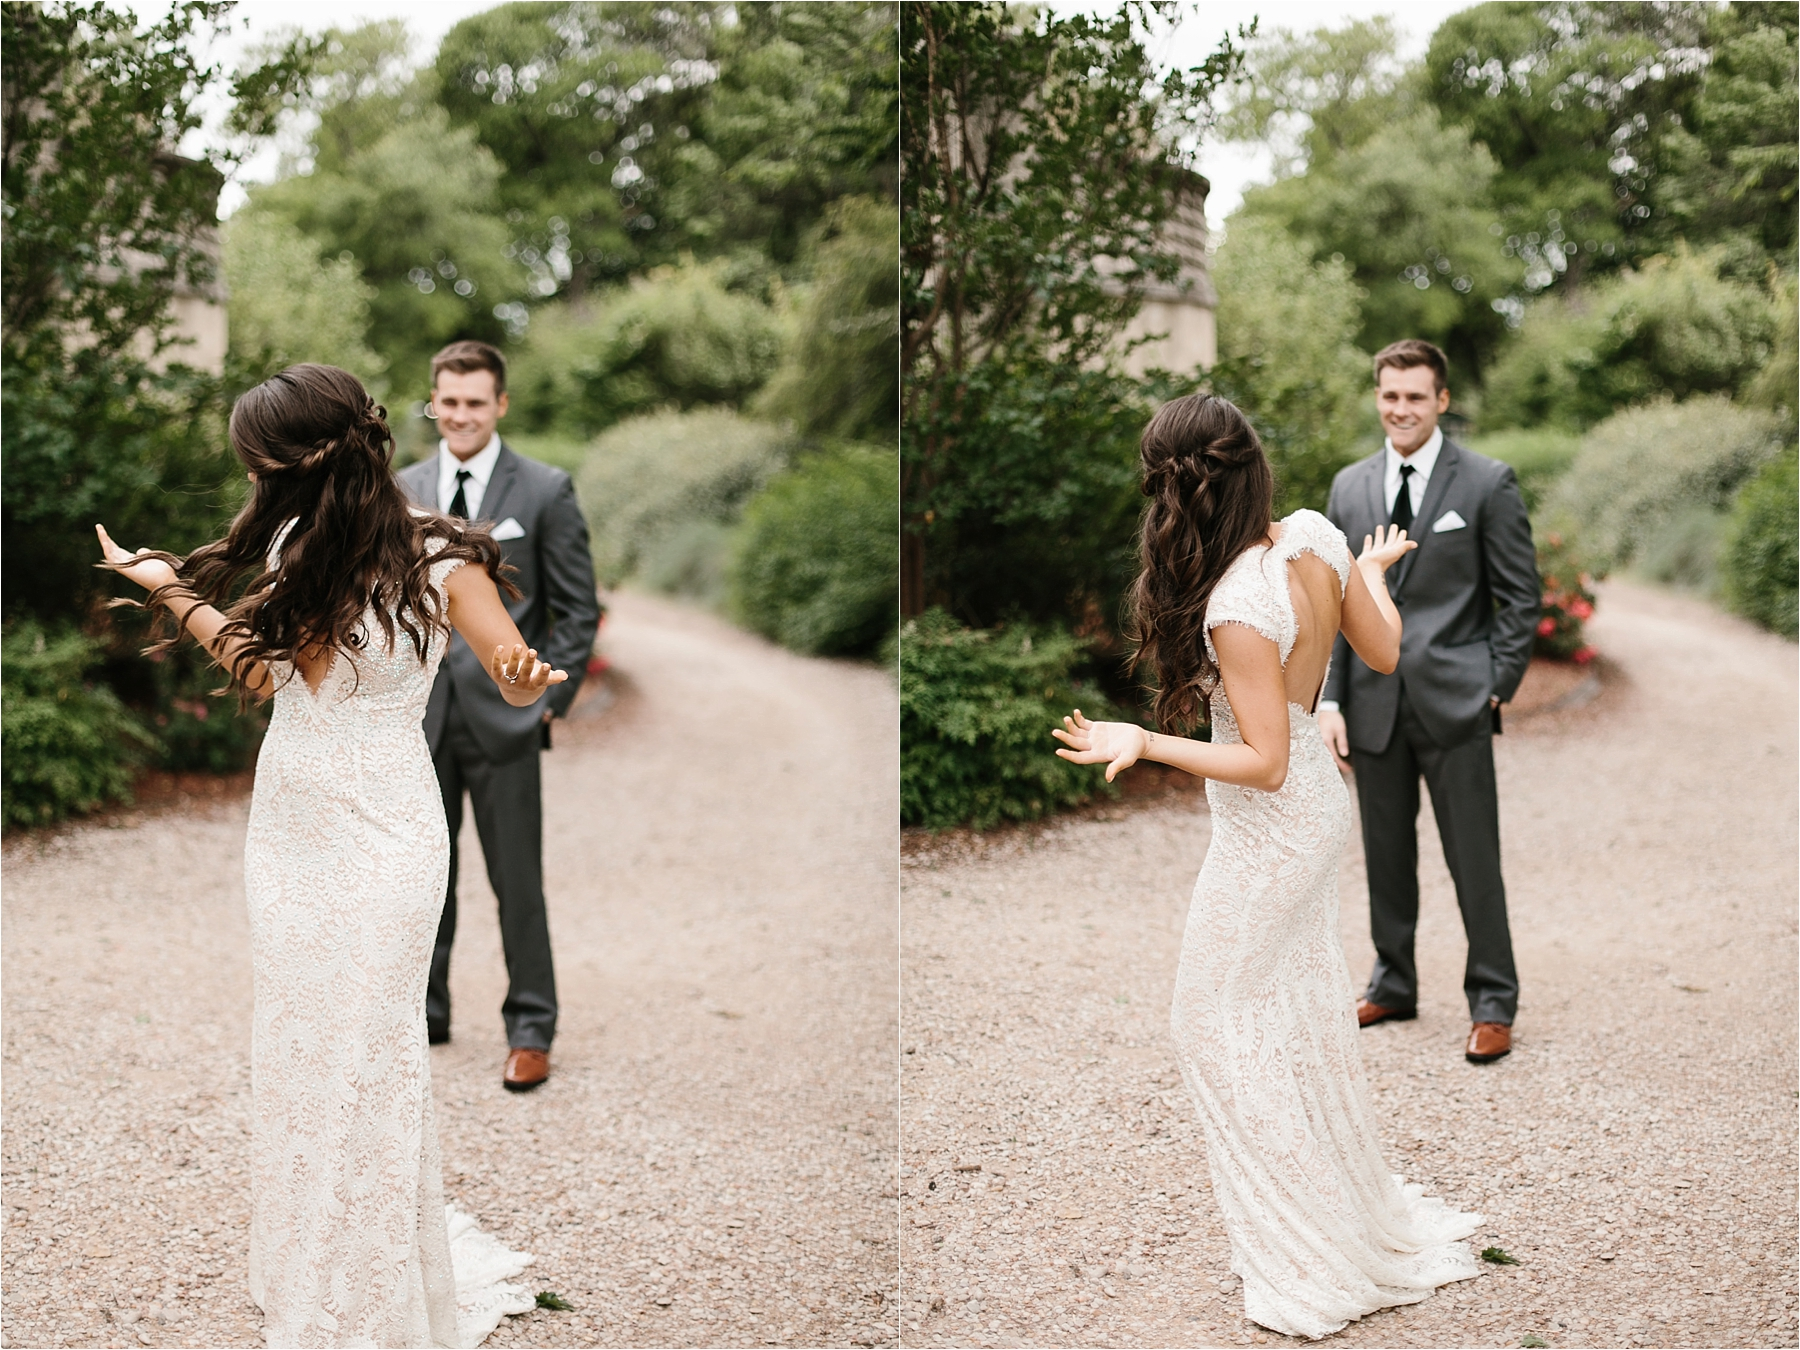 Devyn + Caden __ a Dallas Arboretum Garden Style Wedding by North Texas Wedding Photographer Rachel Meagan Photography __ 022